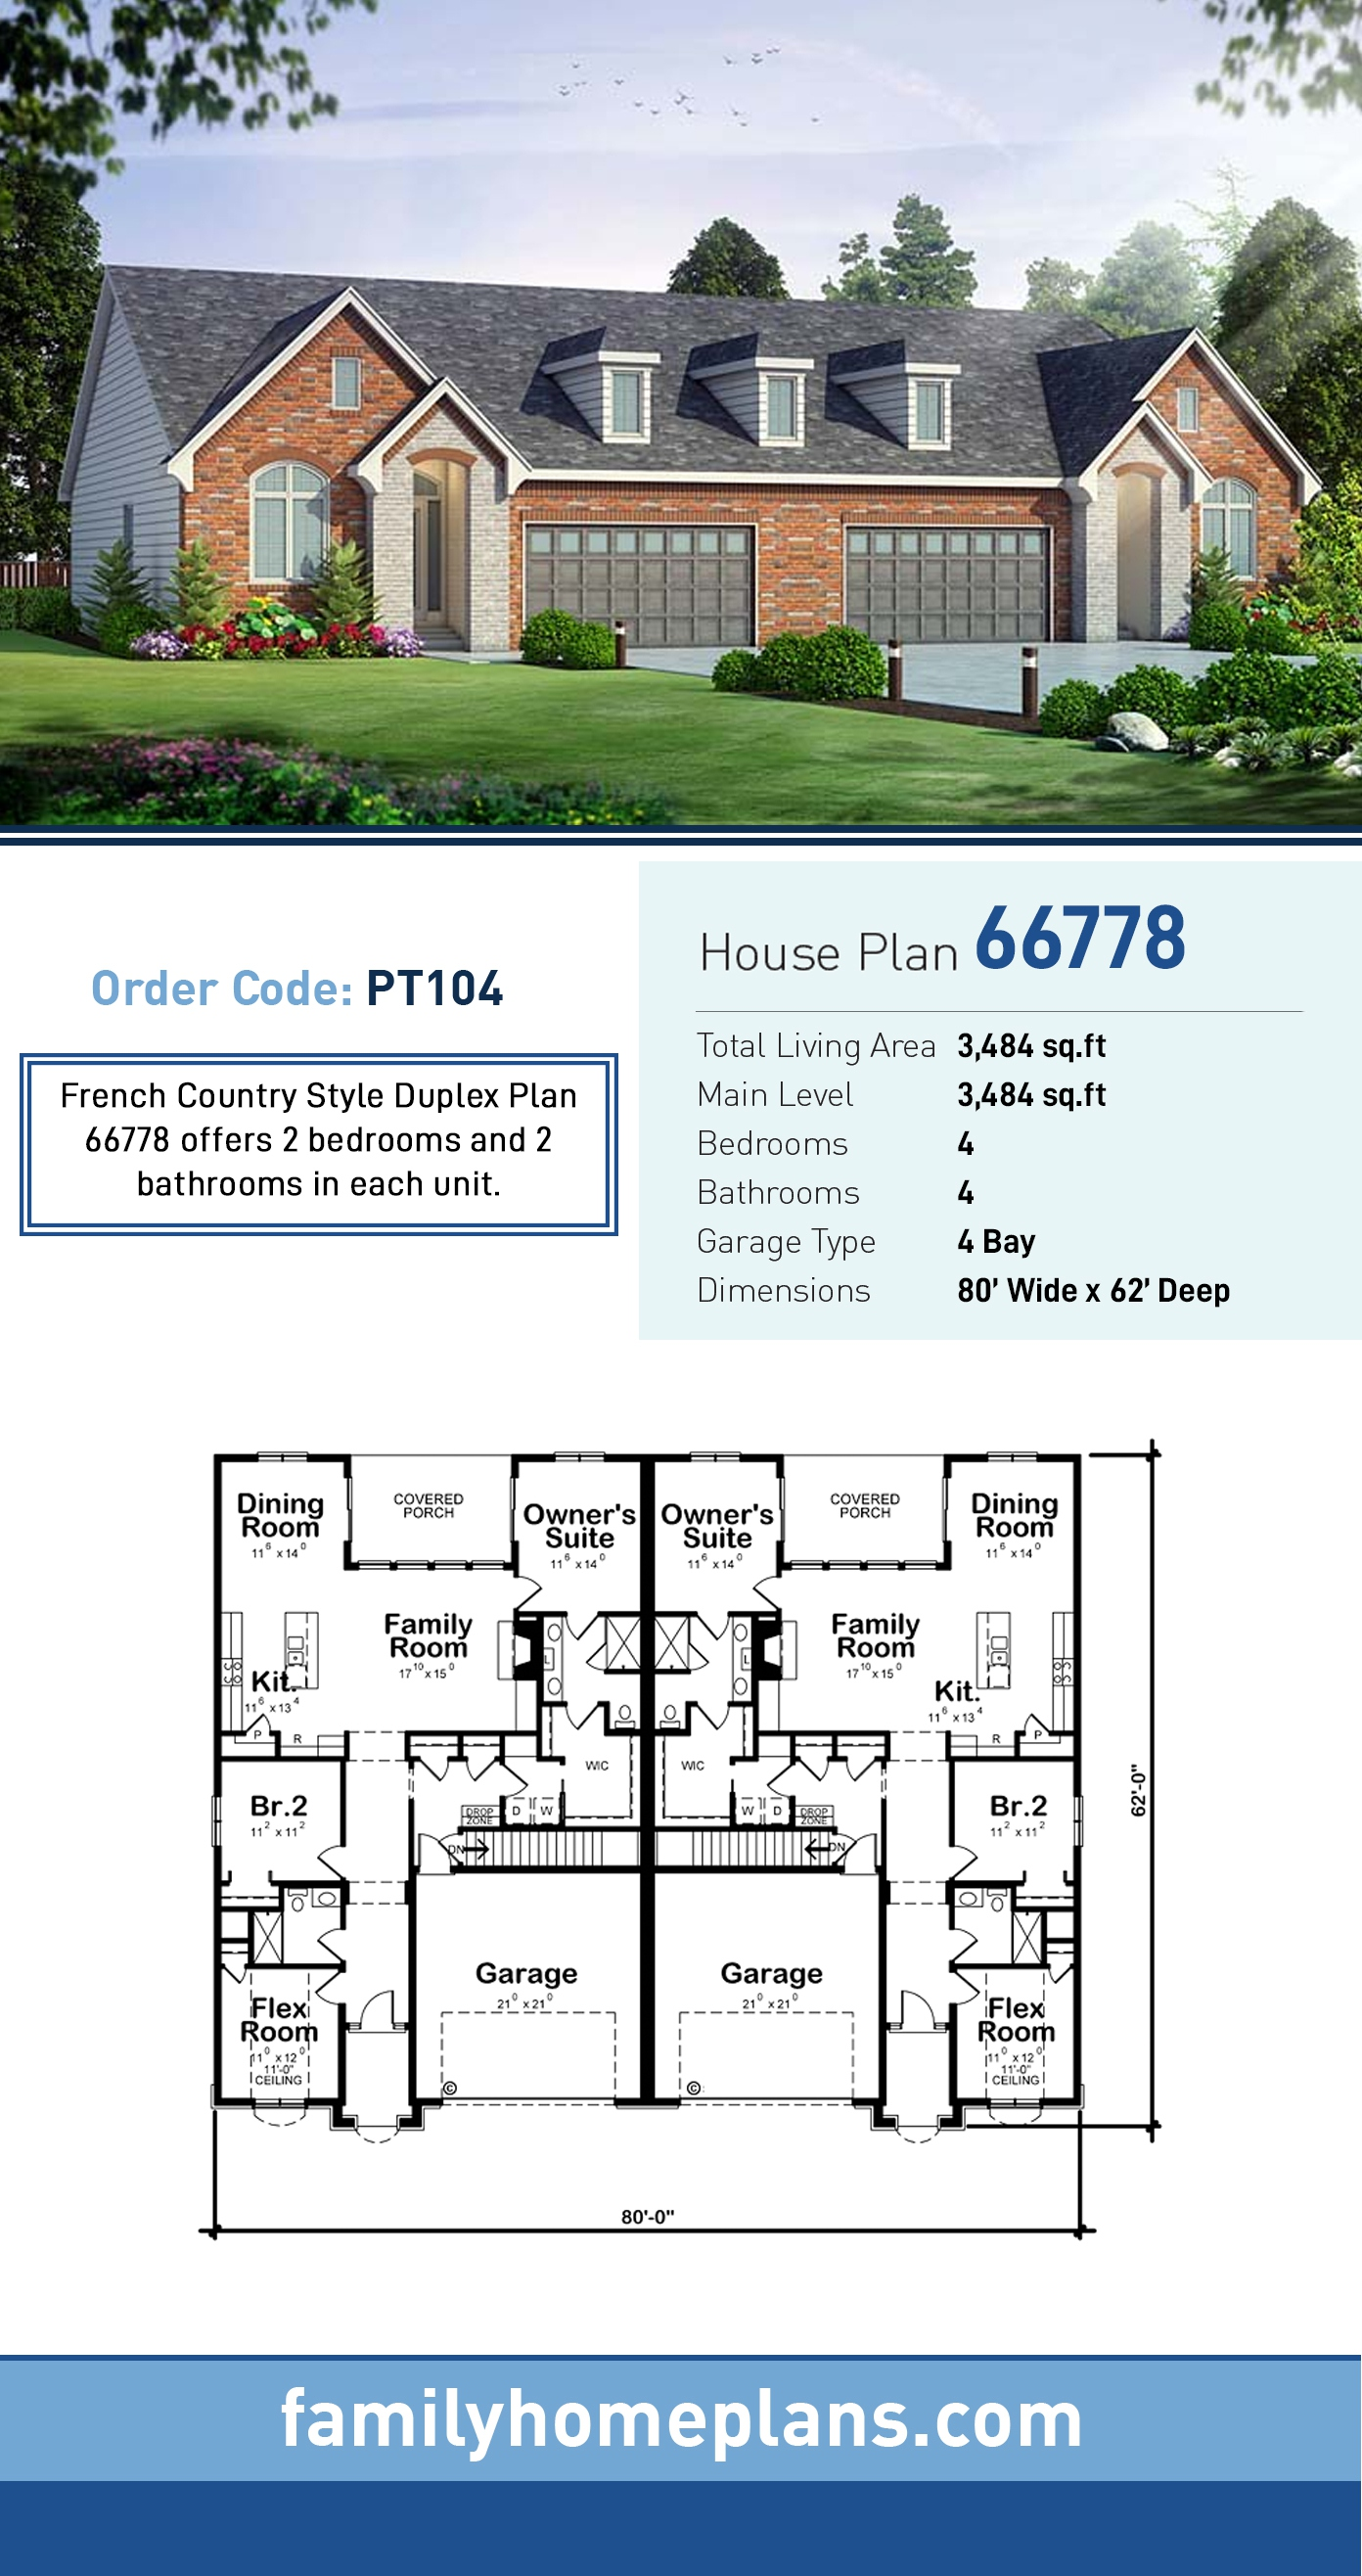 European, French Country Multi-Family Plan 66778 with 4 Beds, 4 Baths, 4 Car Garage